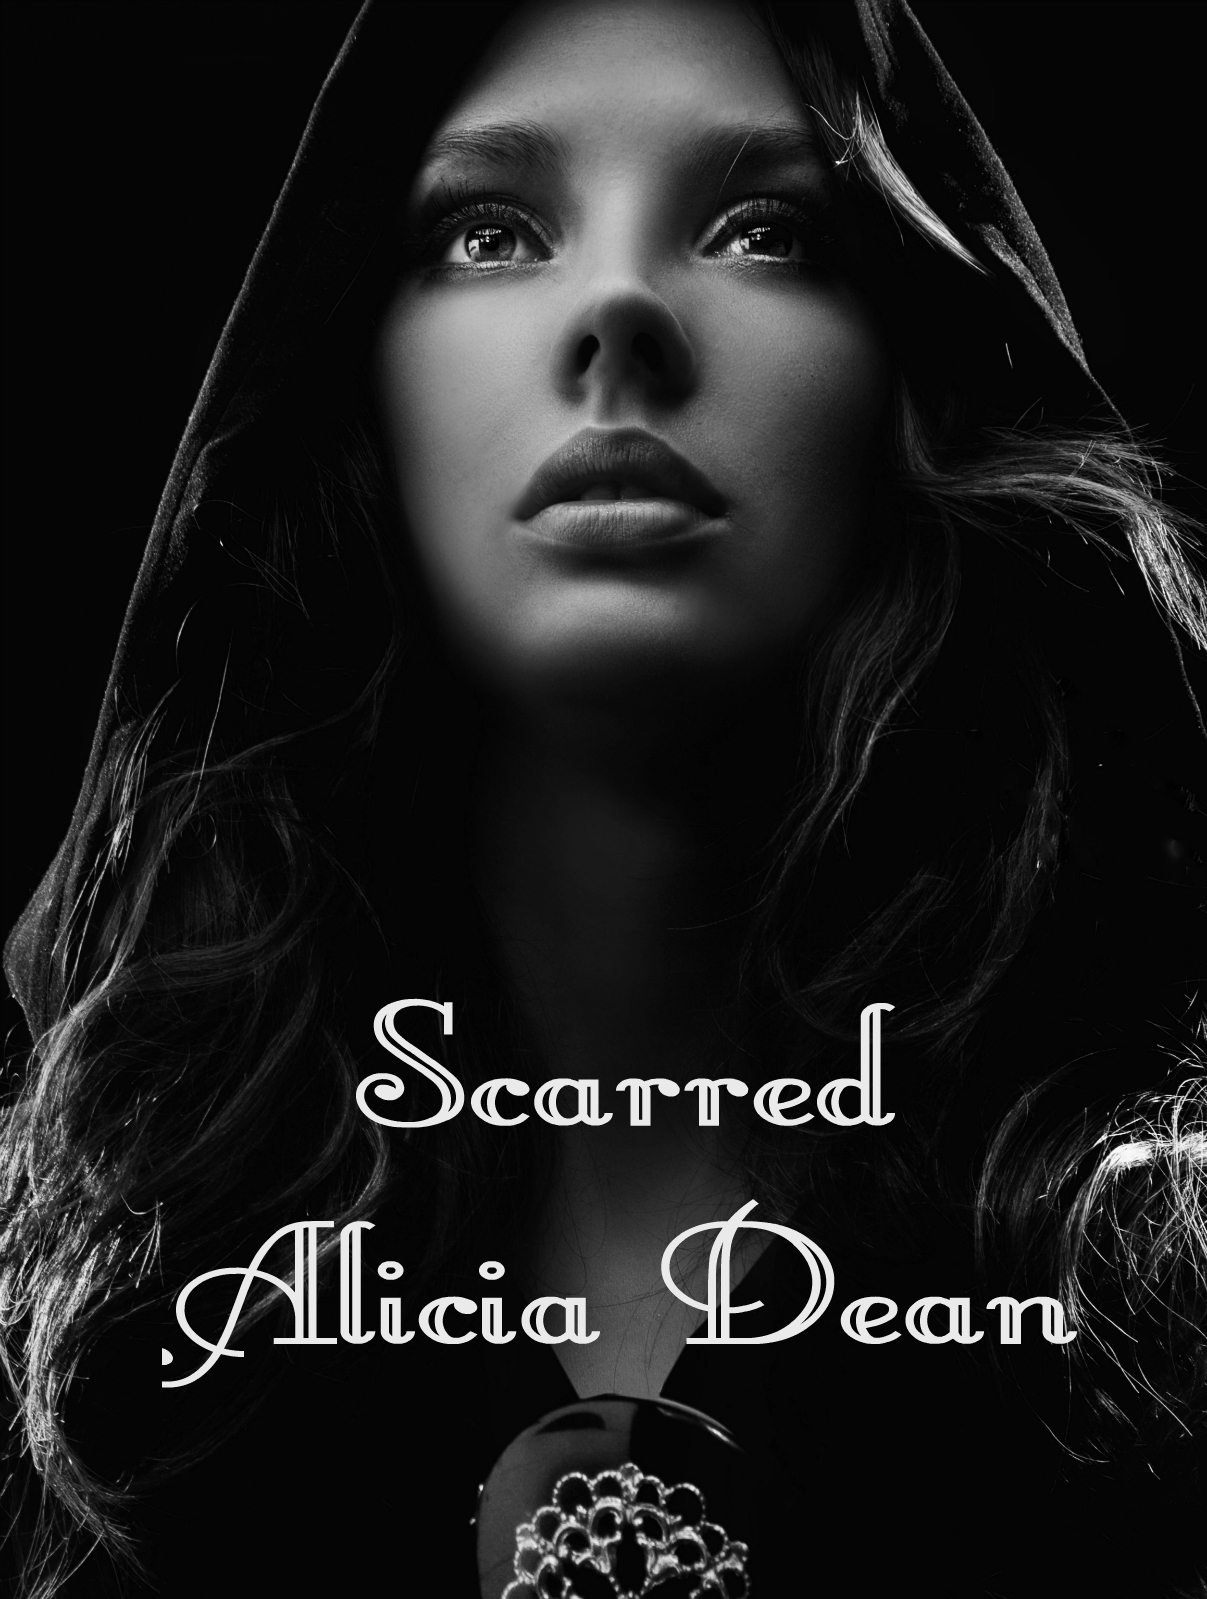 Scarred Alicia Myers Without You